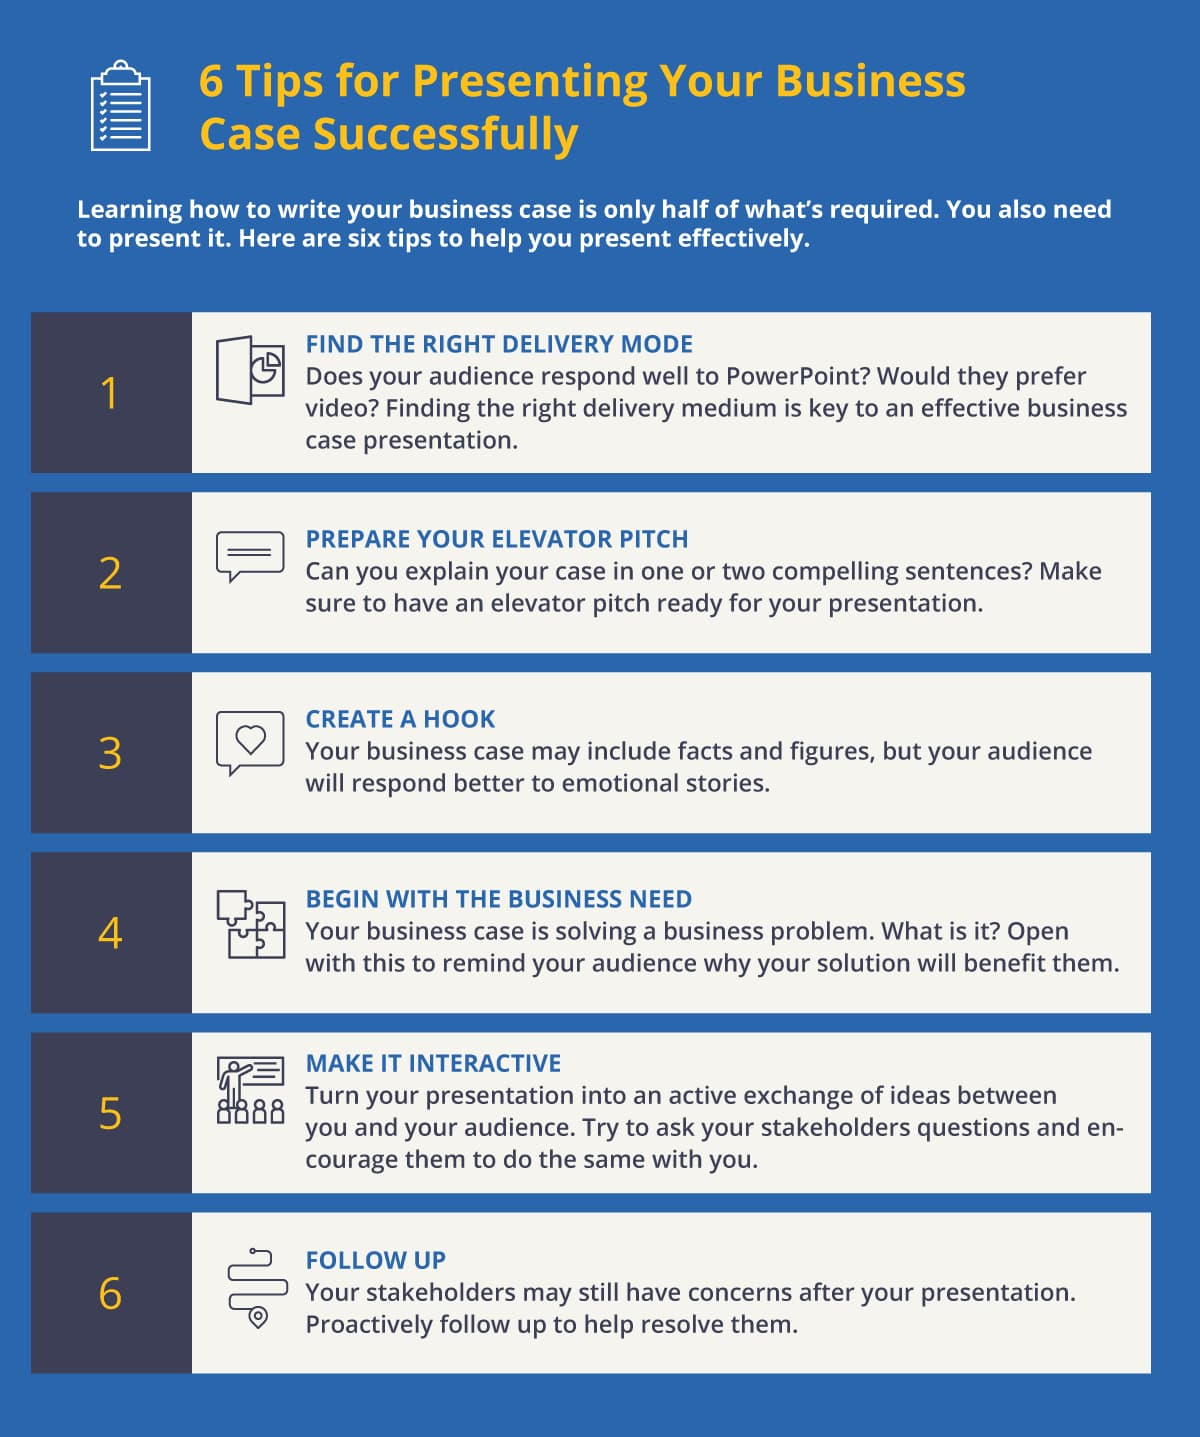 6 Tips for Presenting Your Business Case Successfully